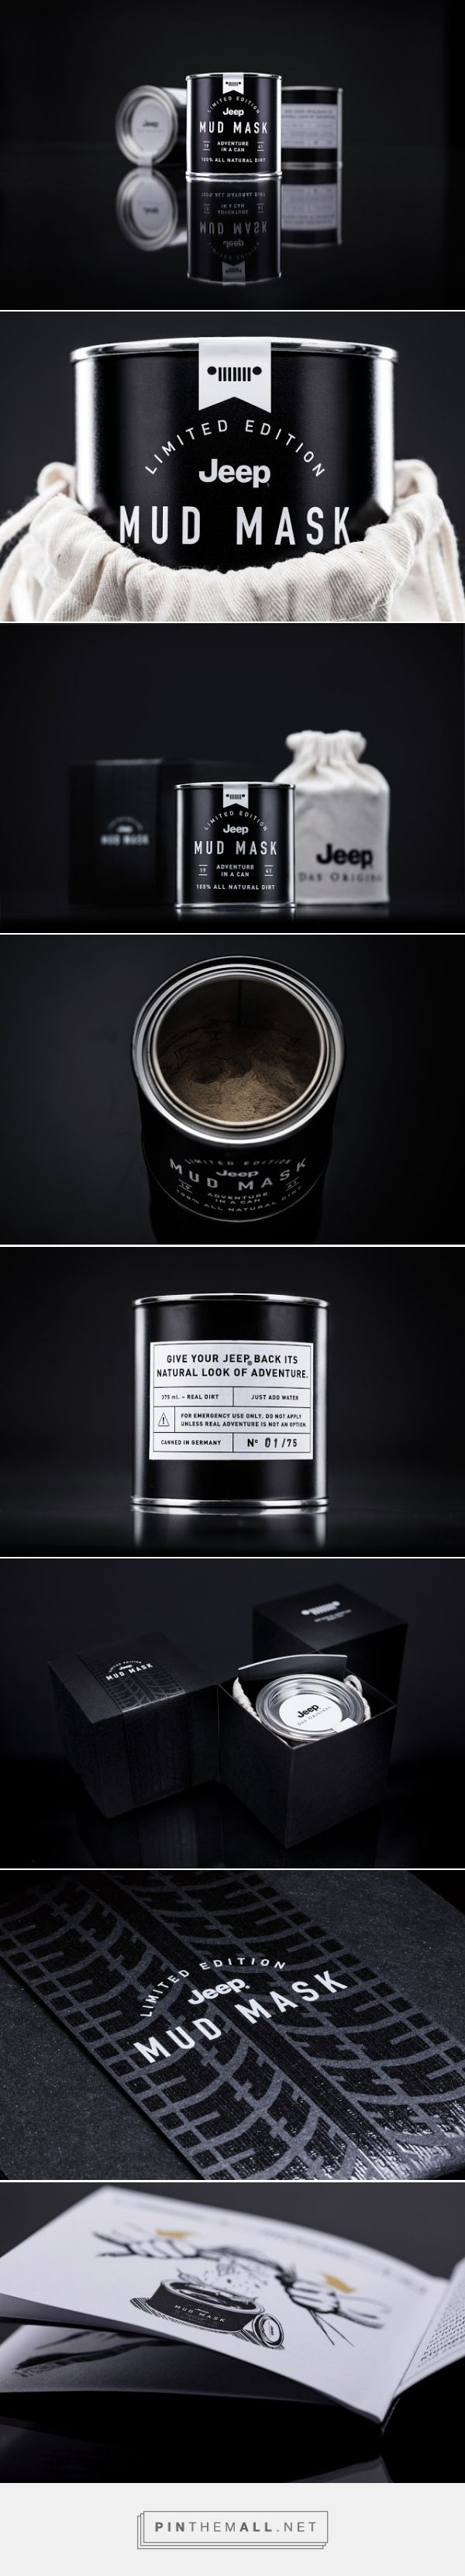 Jeep‬ ‎Mud‬ ‪Mask‬ ‪‎limited edition‬ ‎packaging‬ designed by Parasol Island (‪Germany‬) - http://www.packagingoftheworld.com/2016/02/jeep-mud-mask.html